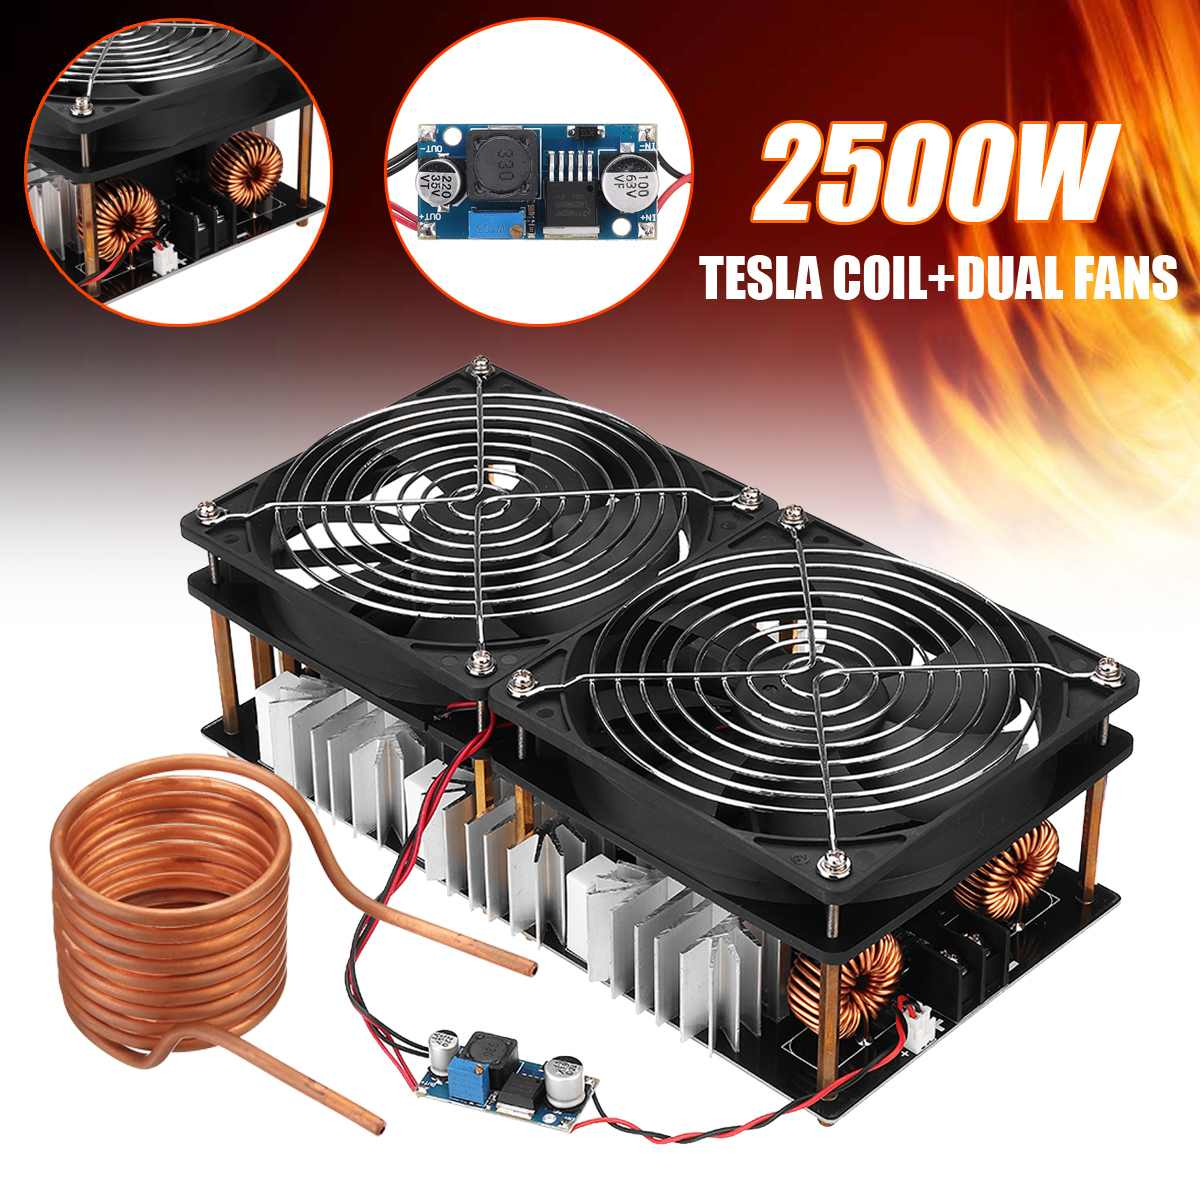 1800W/2500W ZVS Induction Heater Induction Heating PCB Board Module Flyback Driver Heater Cooling Fan Interface+ 48V Coil Mayitr1800W/2500W ZVS Induction Heater Induction Heating PCB Board Module Flyback Driver Heater Cooling Fan Interface+ 48V Coil Mayitr